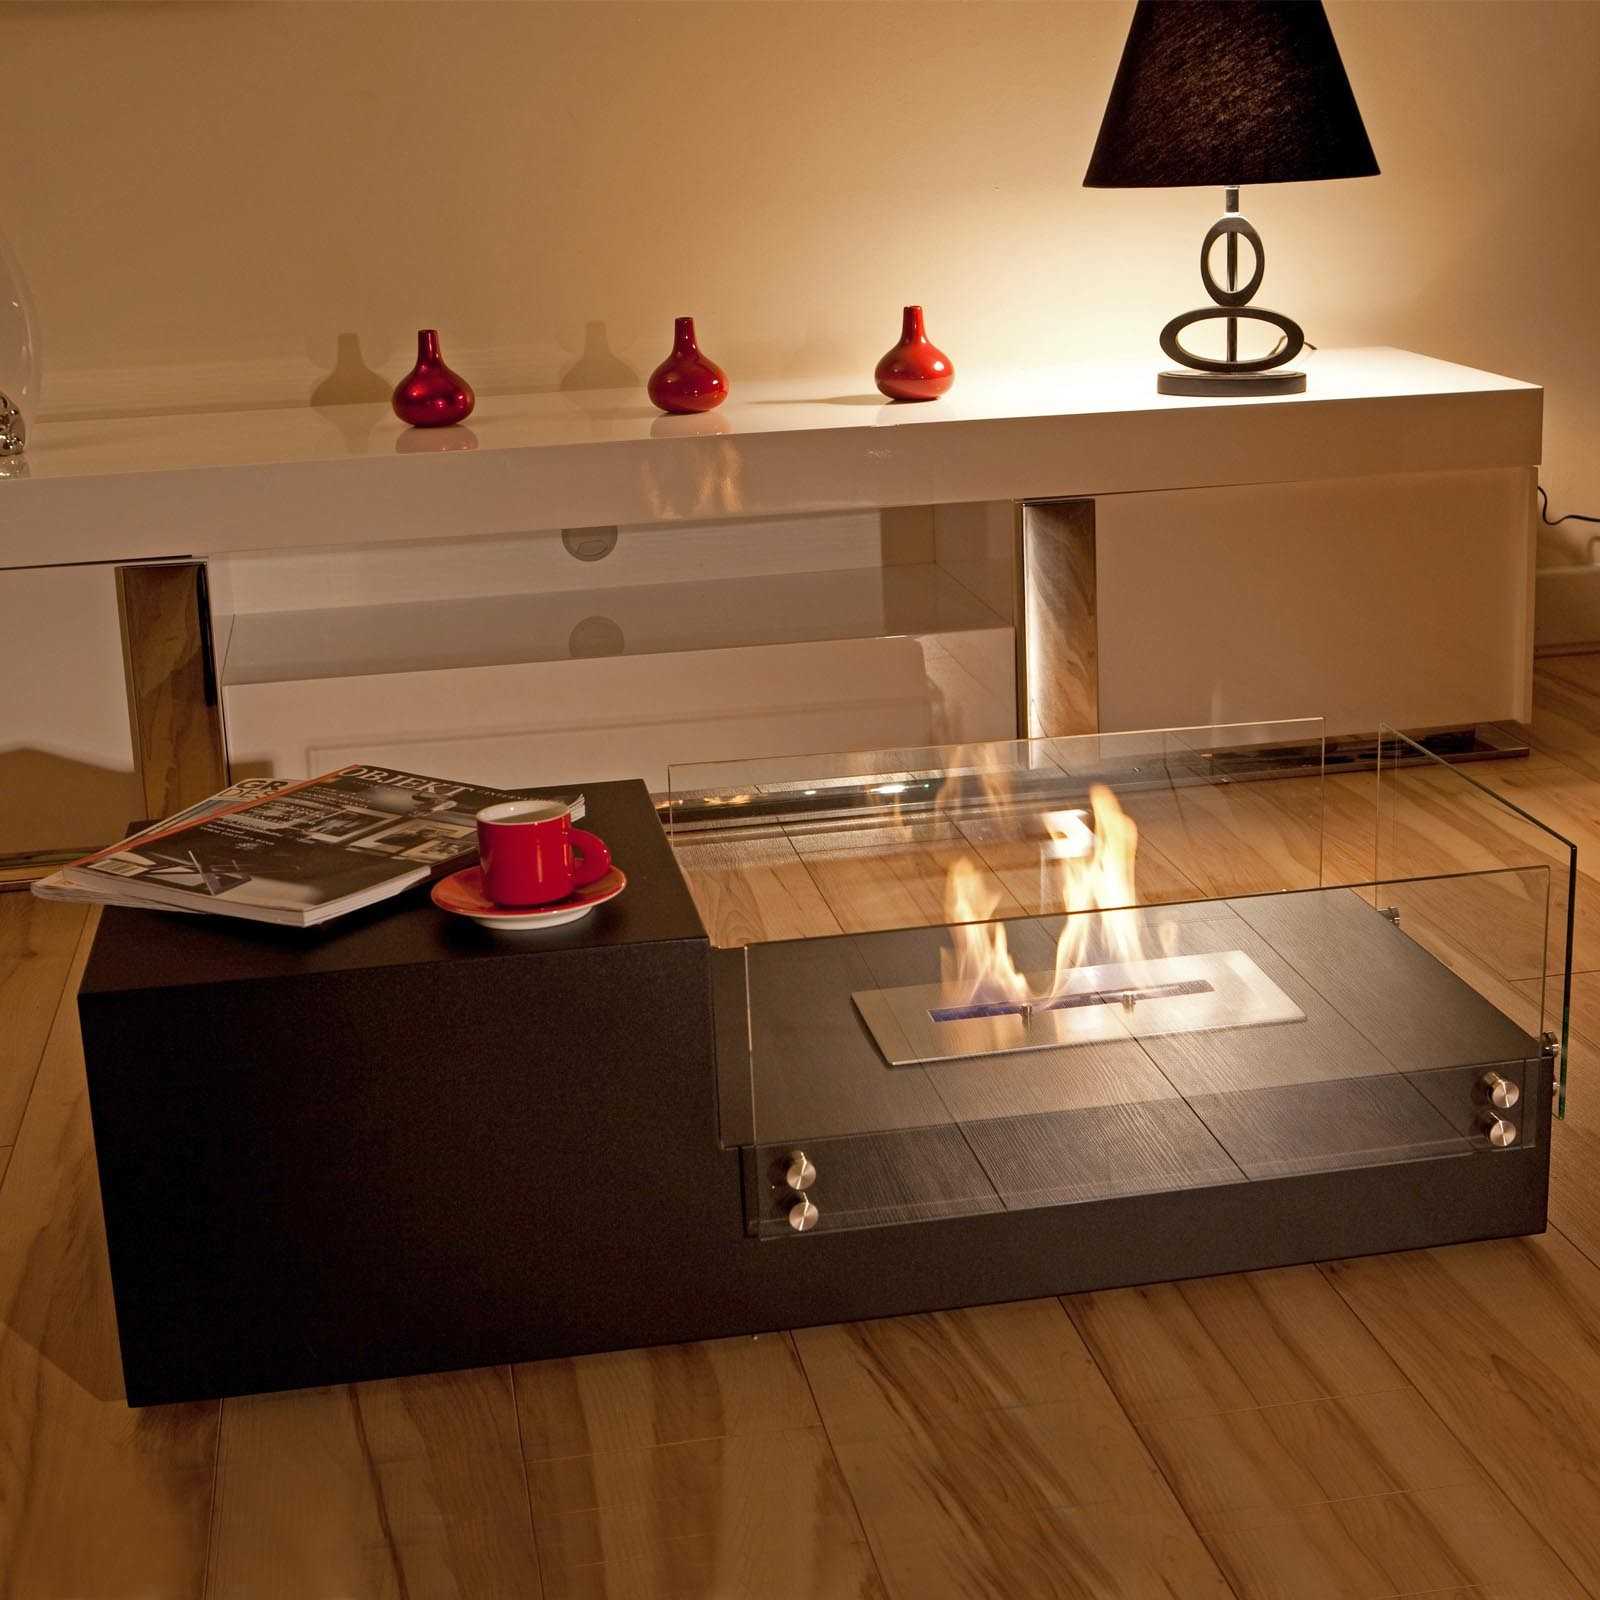 Indoor Fire Pit Elegant Indoor Coffee Table With Fire Pit With Indoor Fire Pit Cool Coffee